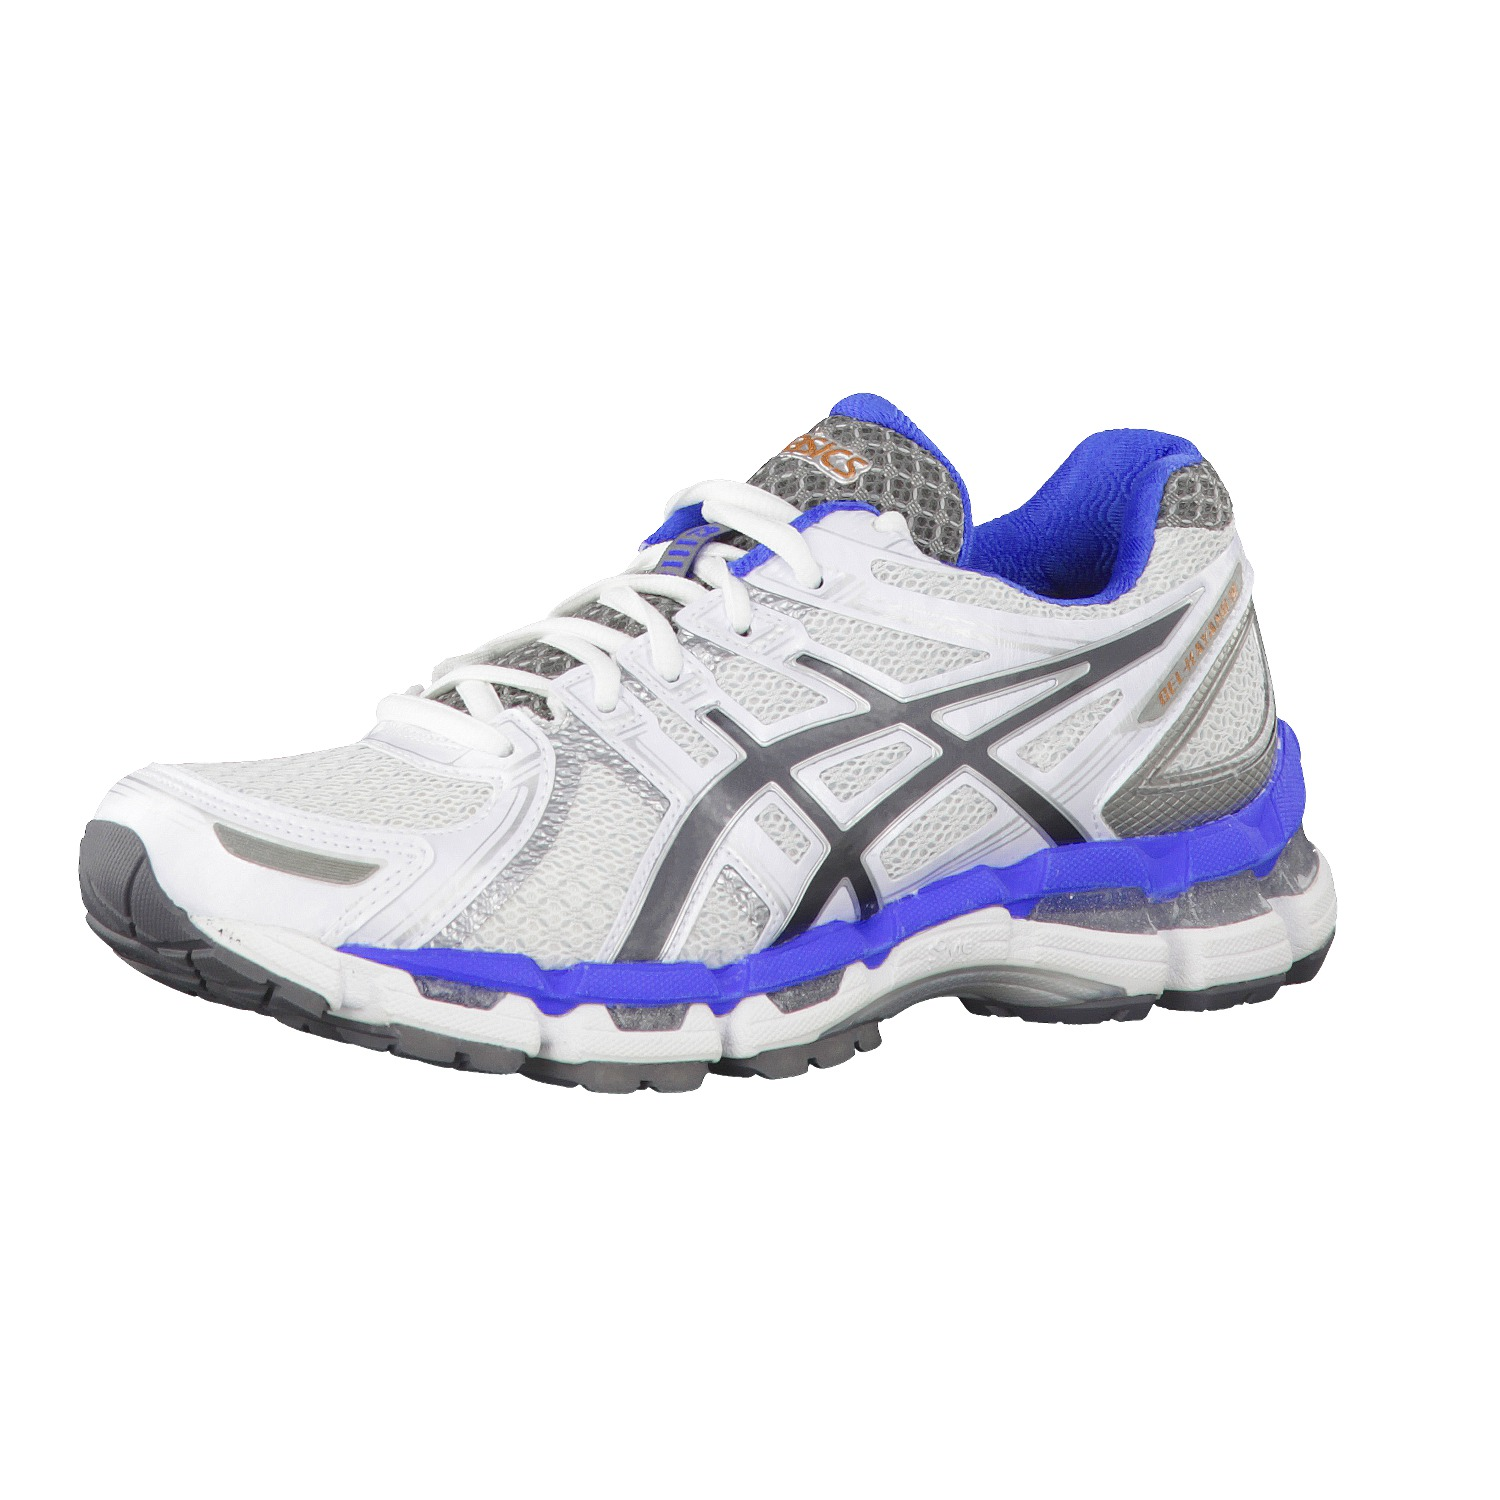 asics gel kayano 20 damen 39 5 kik. Black Bedroom Furniture Sets. Home Design Ideas